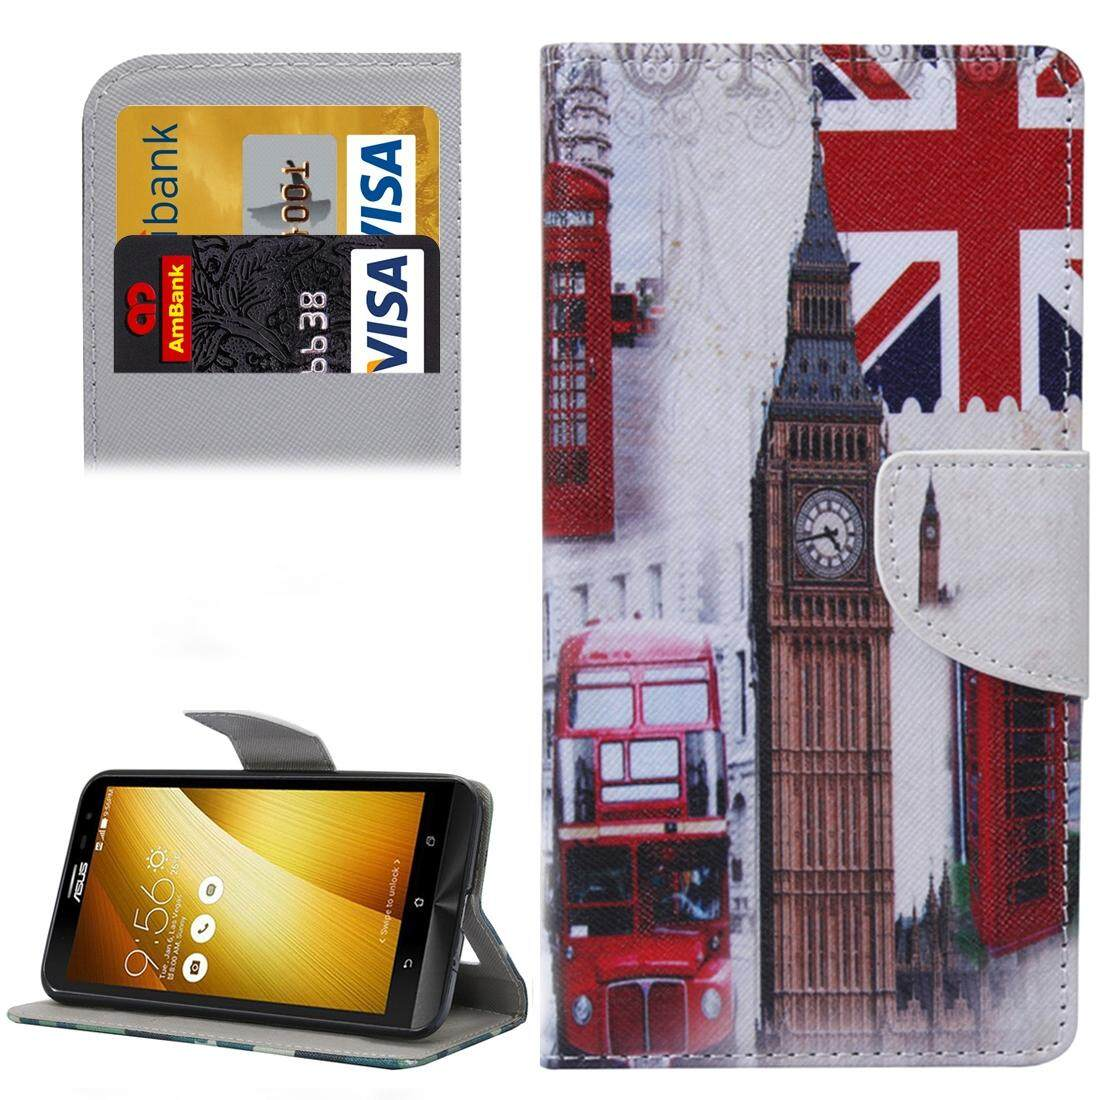 Soft Tpu 3d Embossed Painting Cover Case For One Plus 3 Mystic Source . Source · For Asus ZenFone 3 / ZE552KL London Big Ben Pattern Leather Case with ...